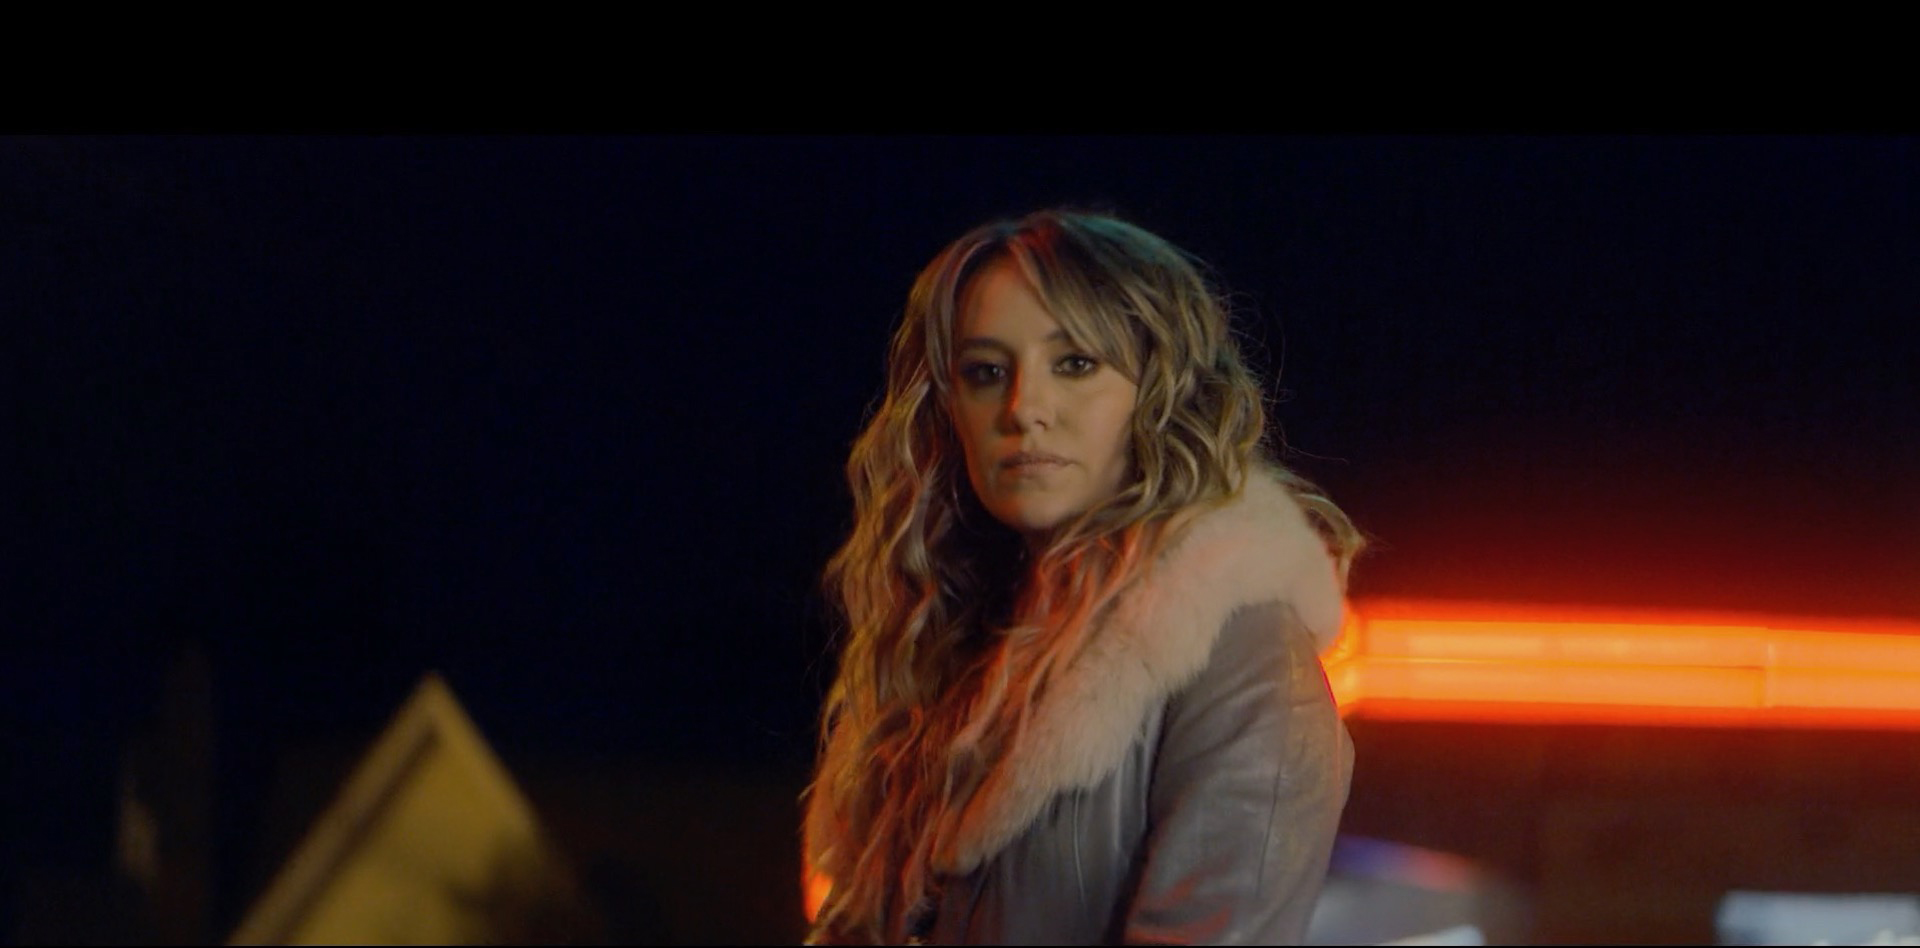 LAINEY WILSON shares the cinematic new video for 'Things A Man Oughta Know' - Watch Now!